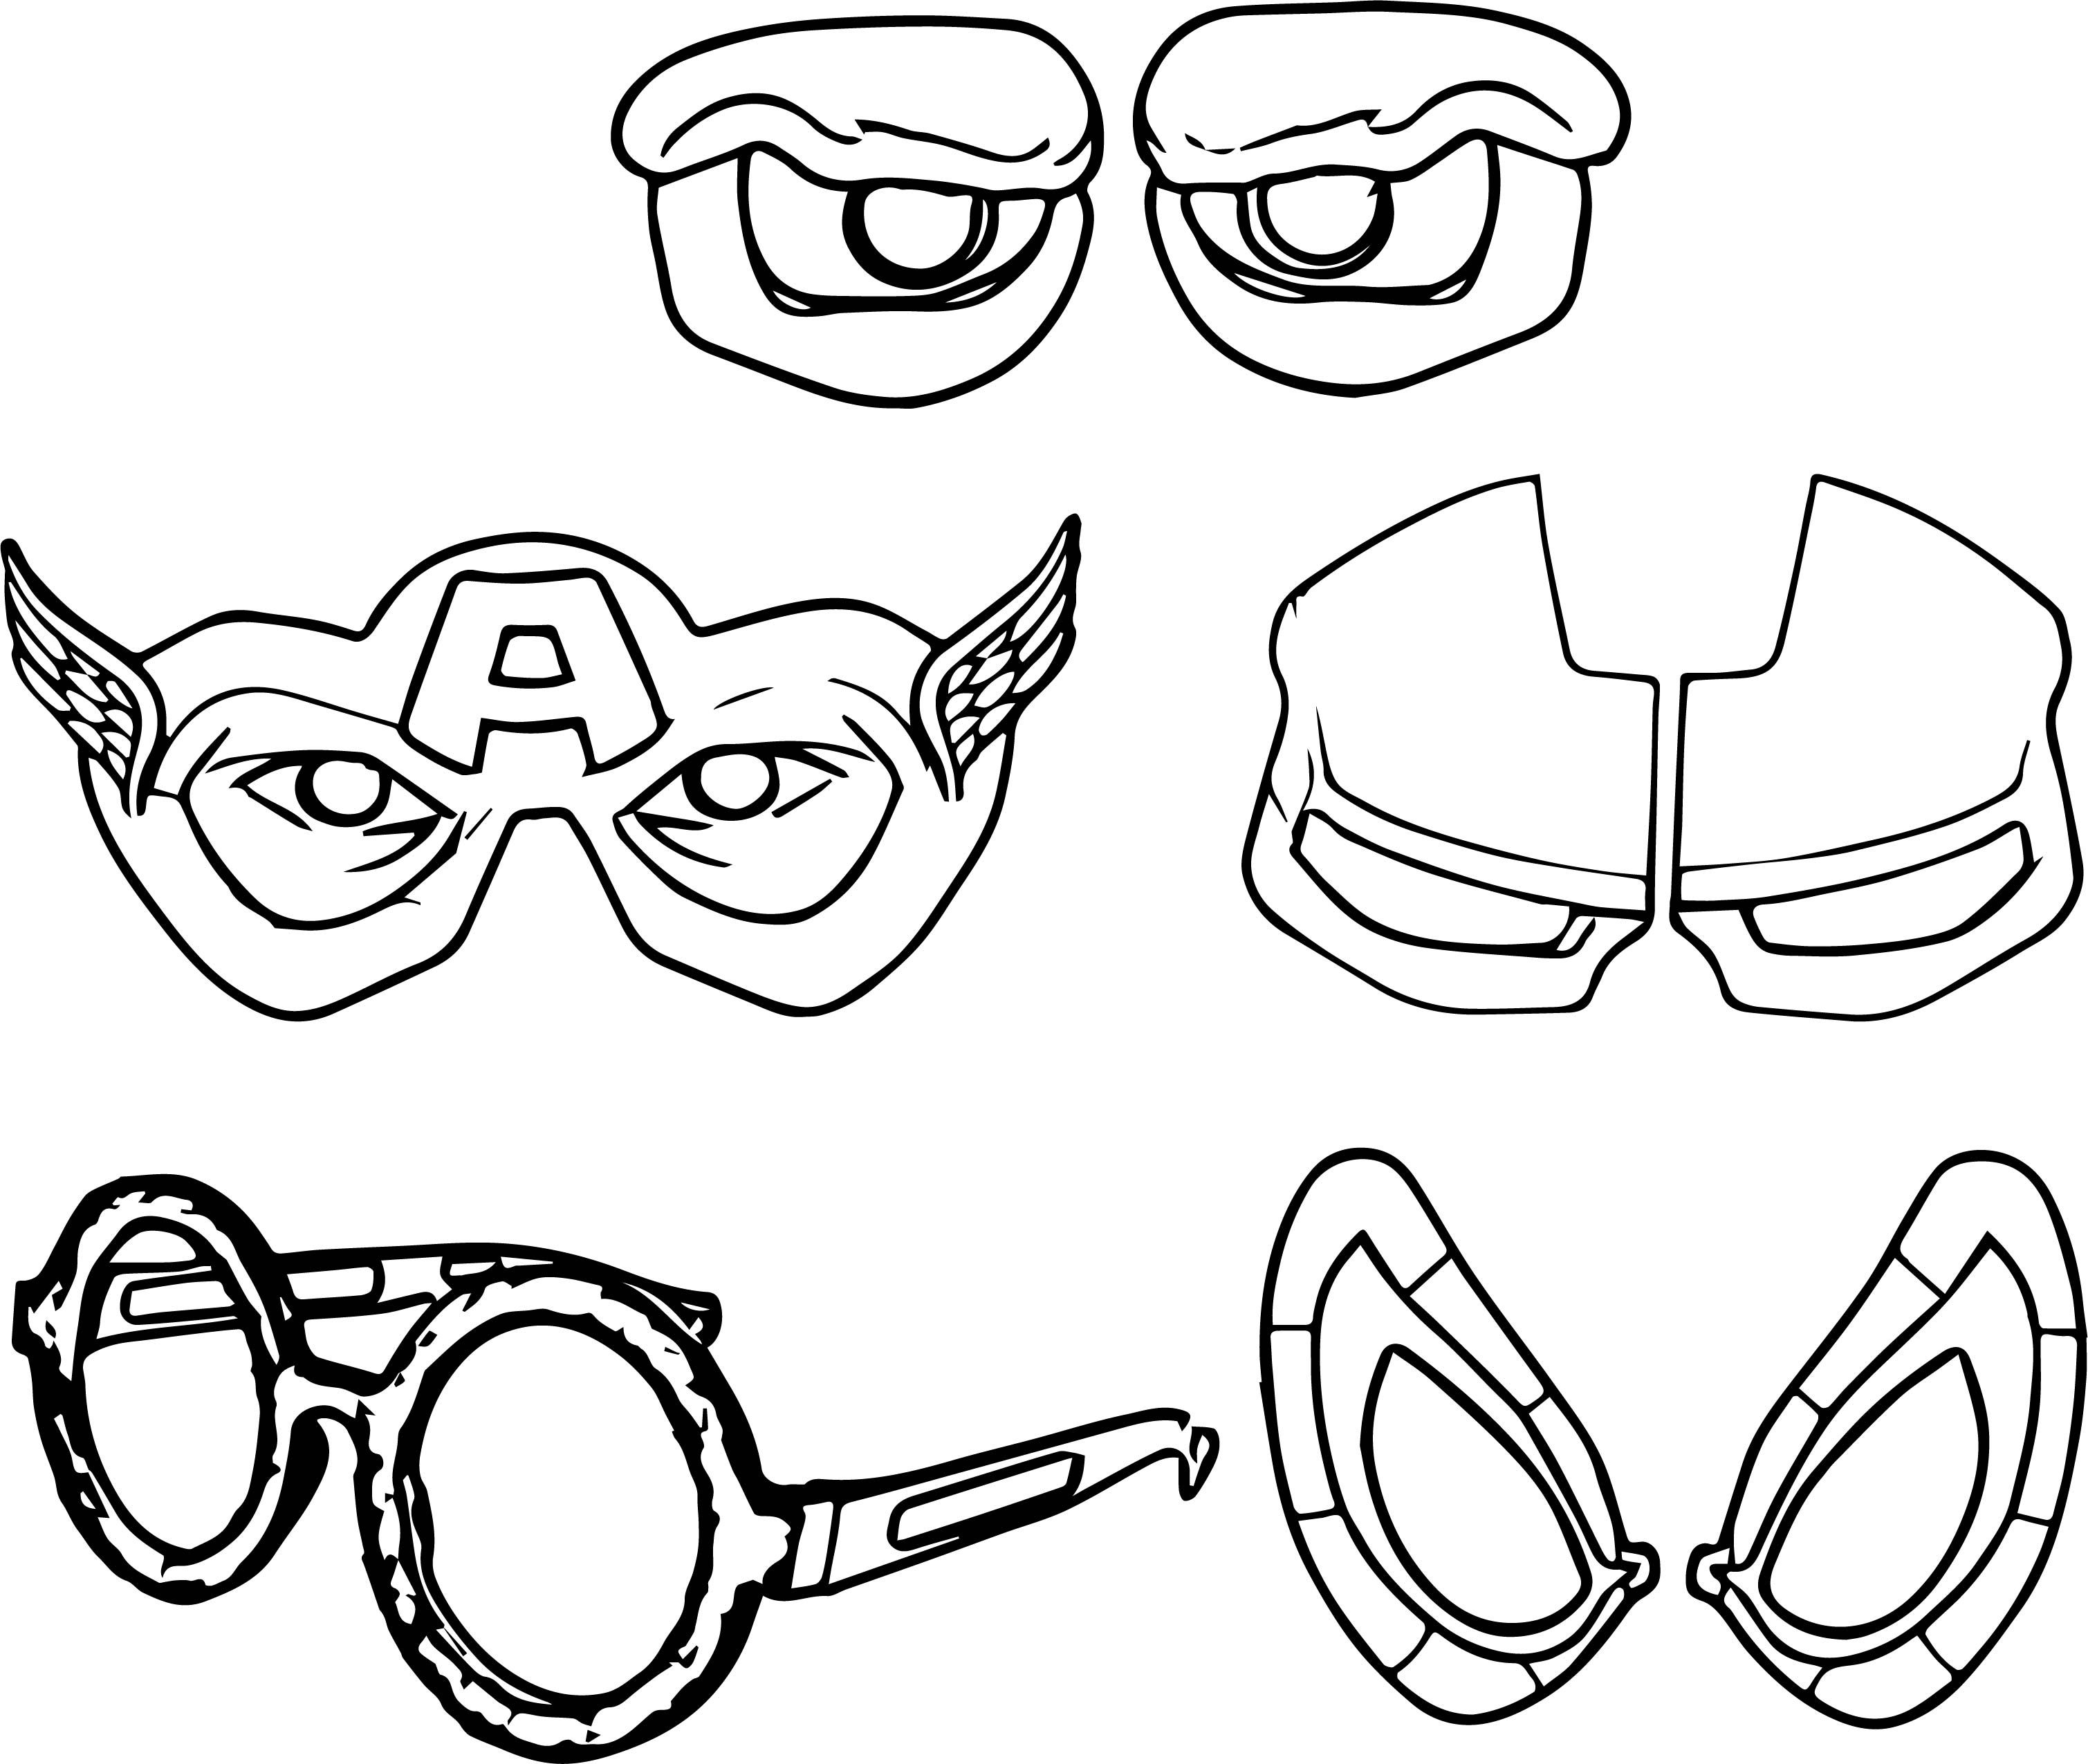 Avengers Eye Mask Coloring Page